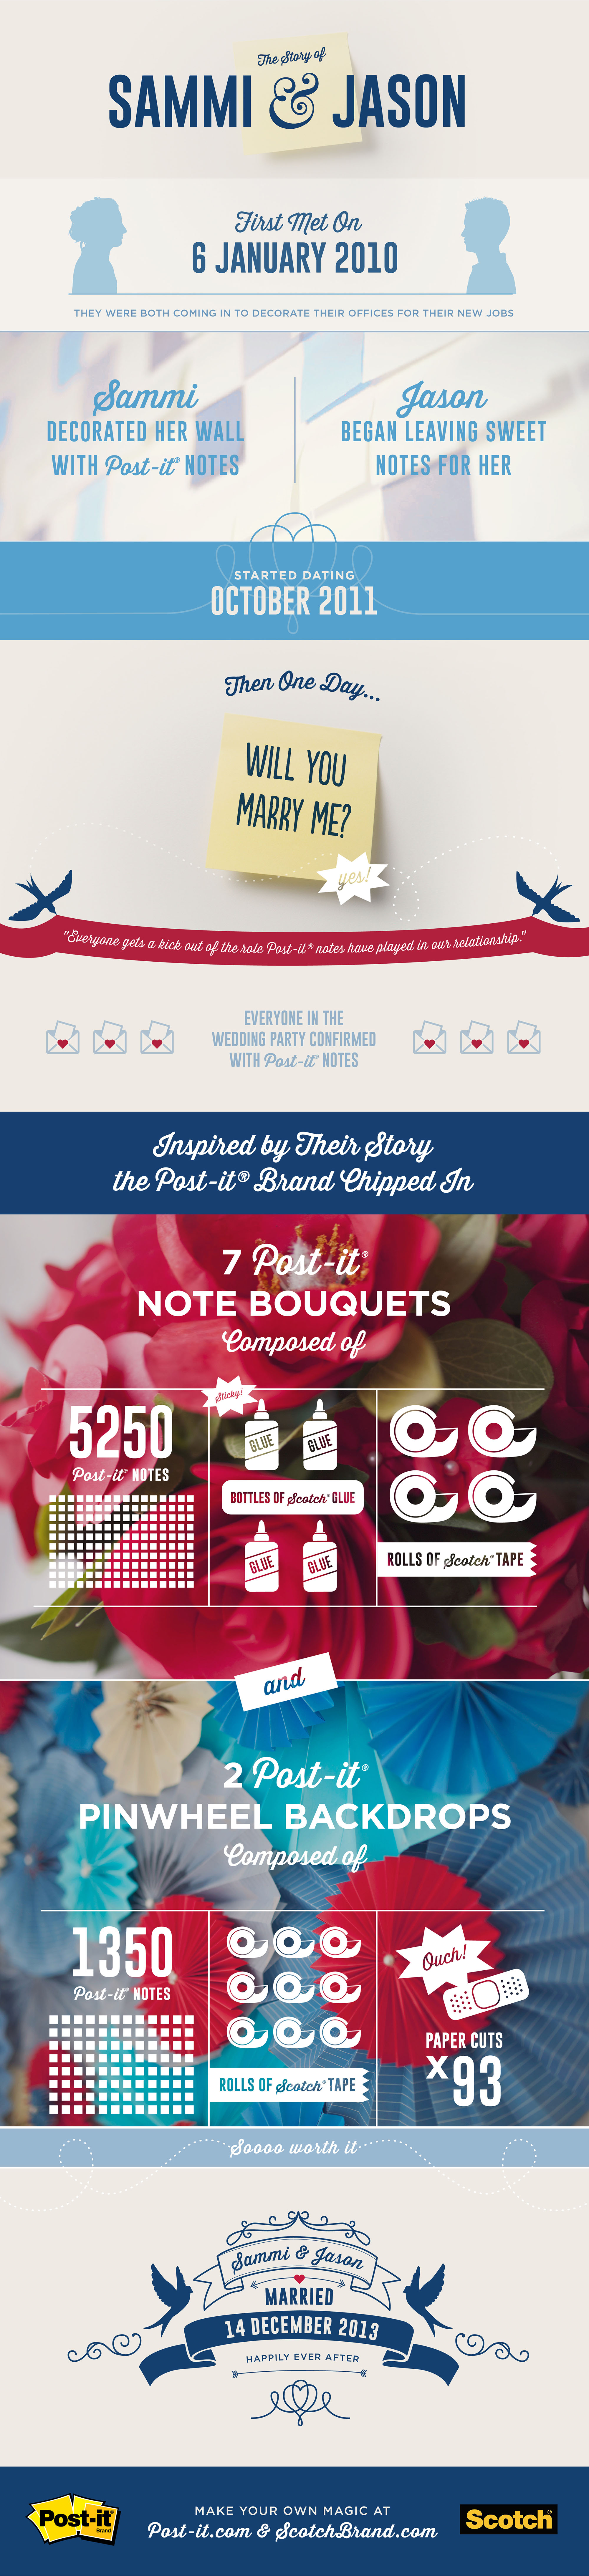 3MweddingInfographic.jpg